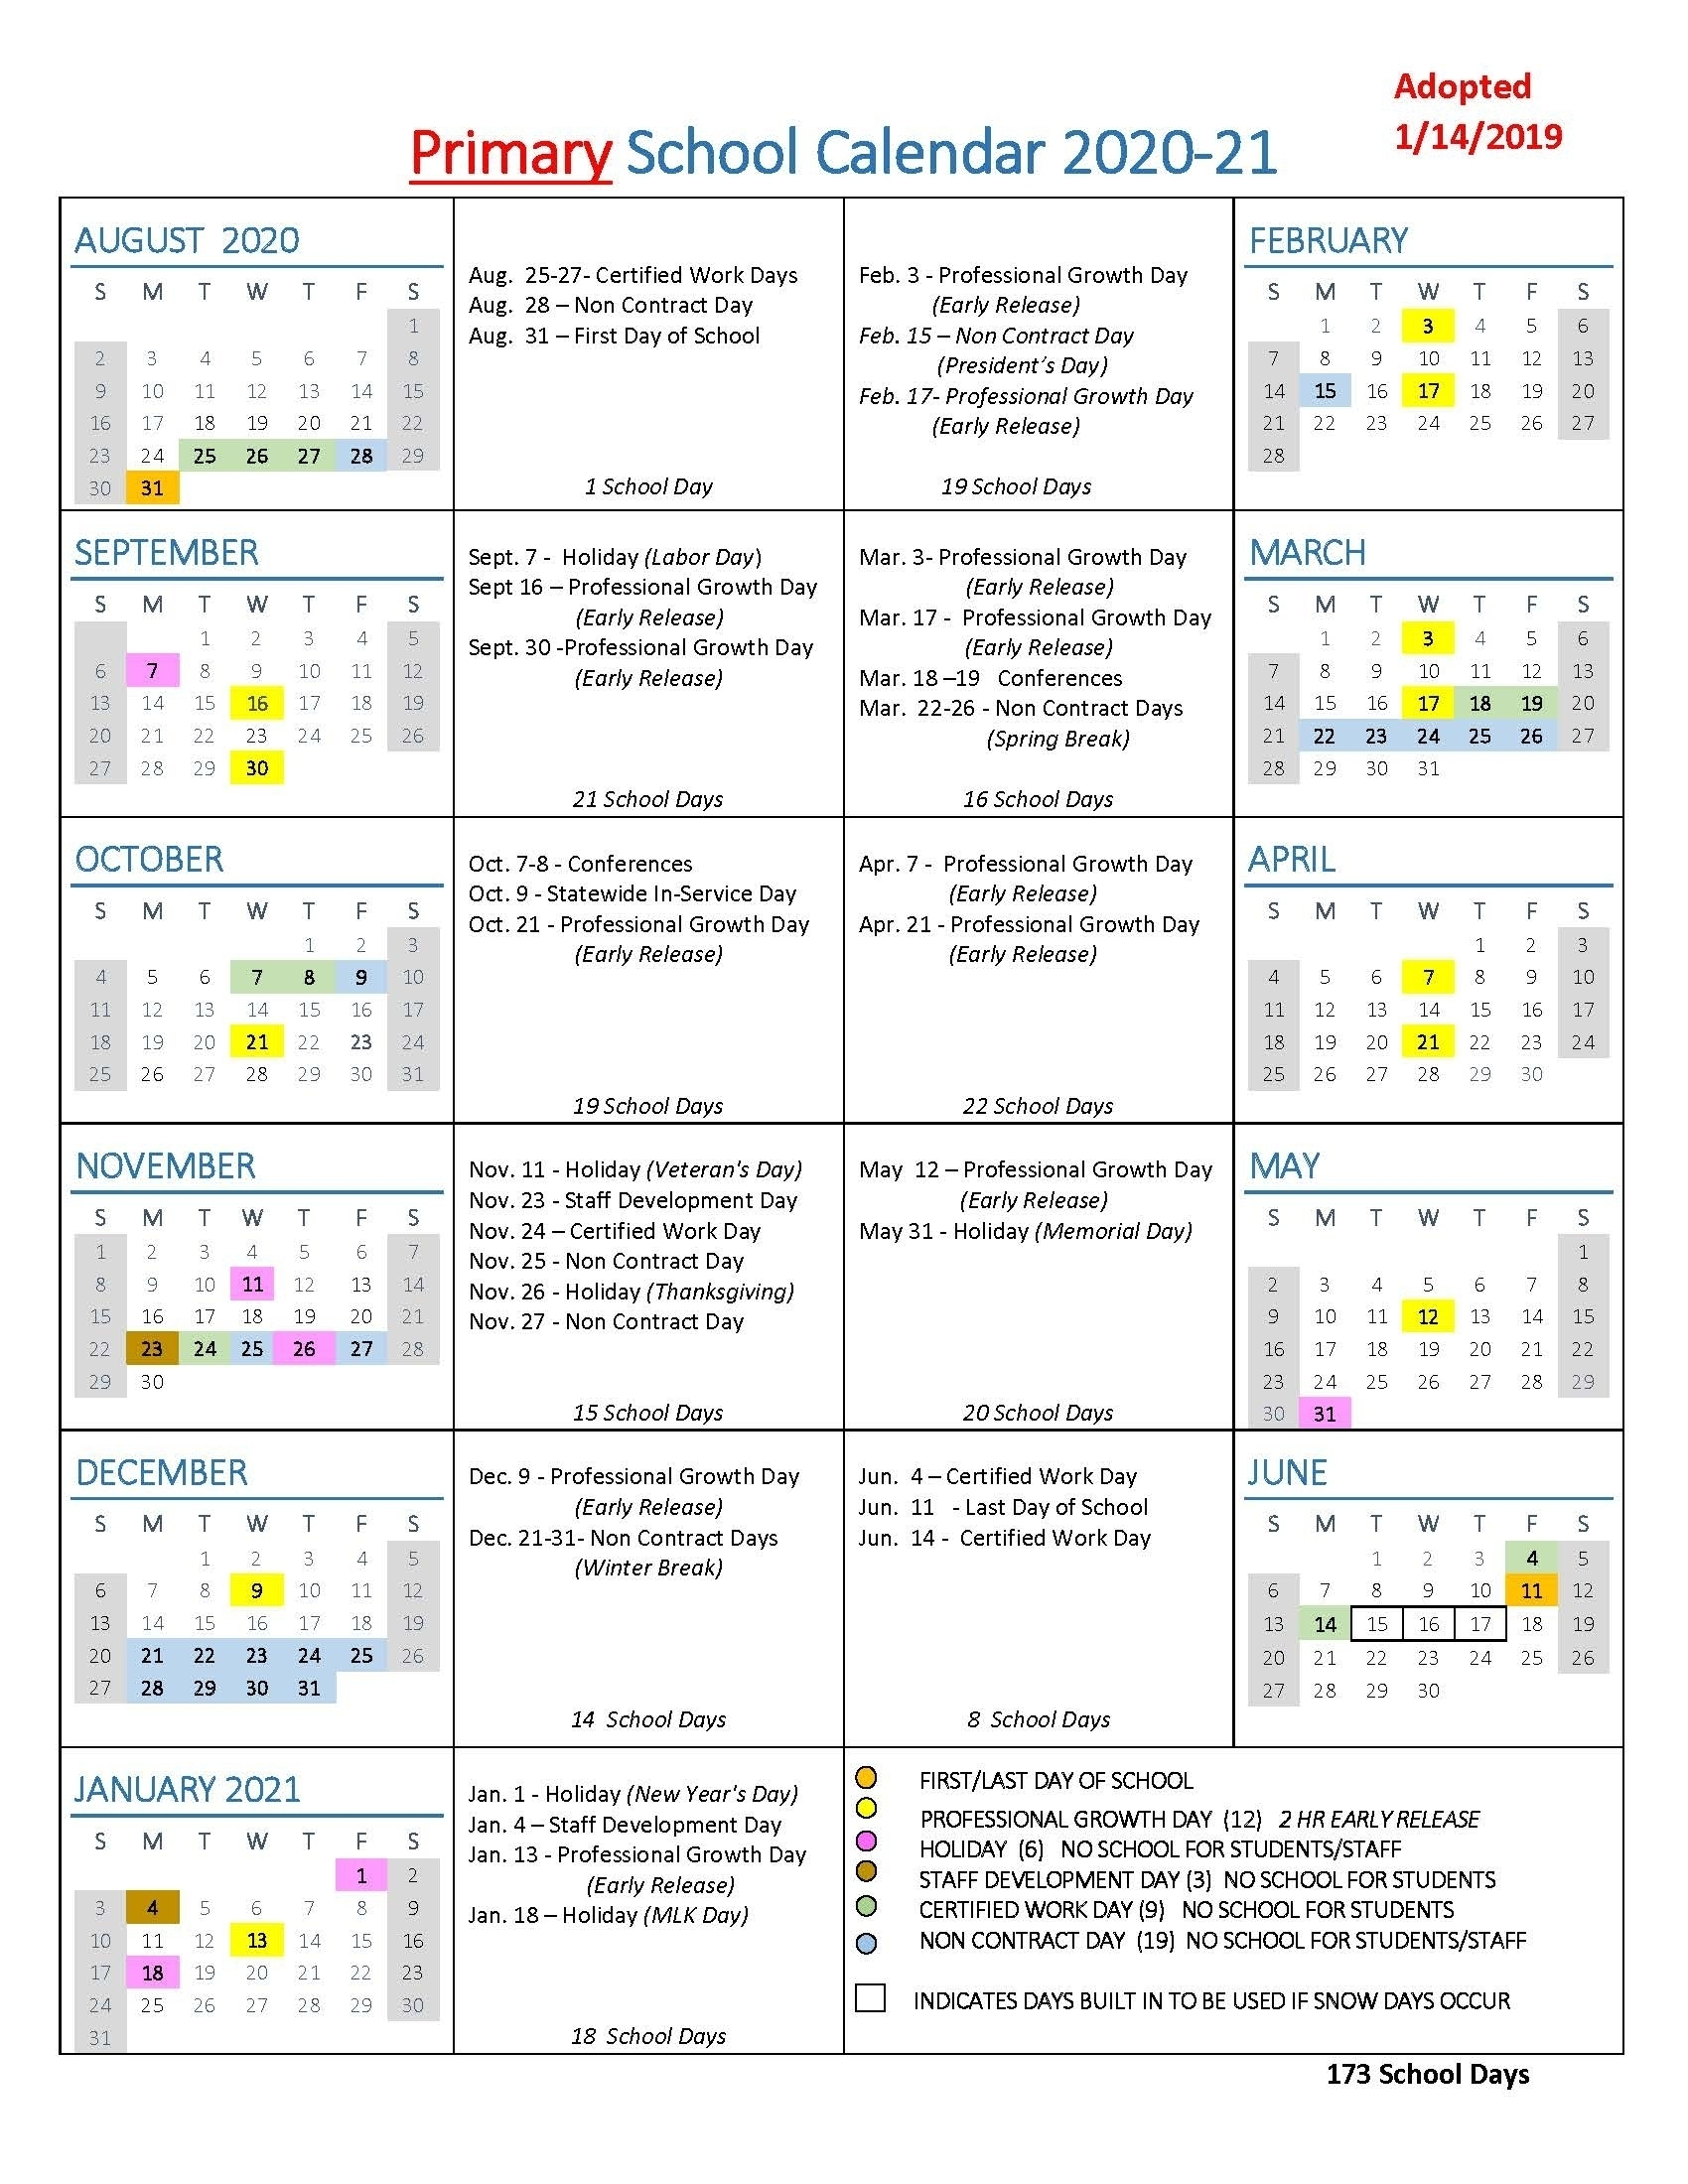 Calendar With All The Special Days In 2020 - Calendar with Calendar With All The Special Days